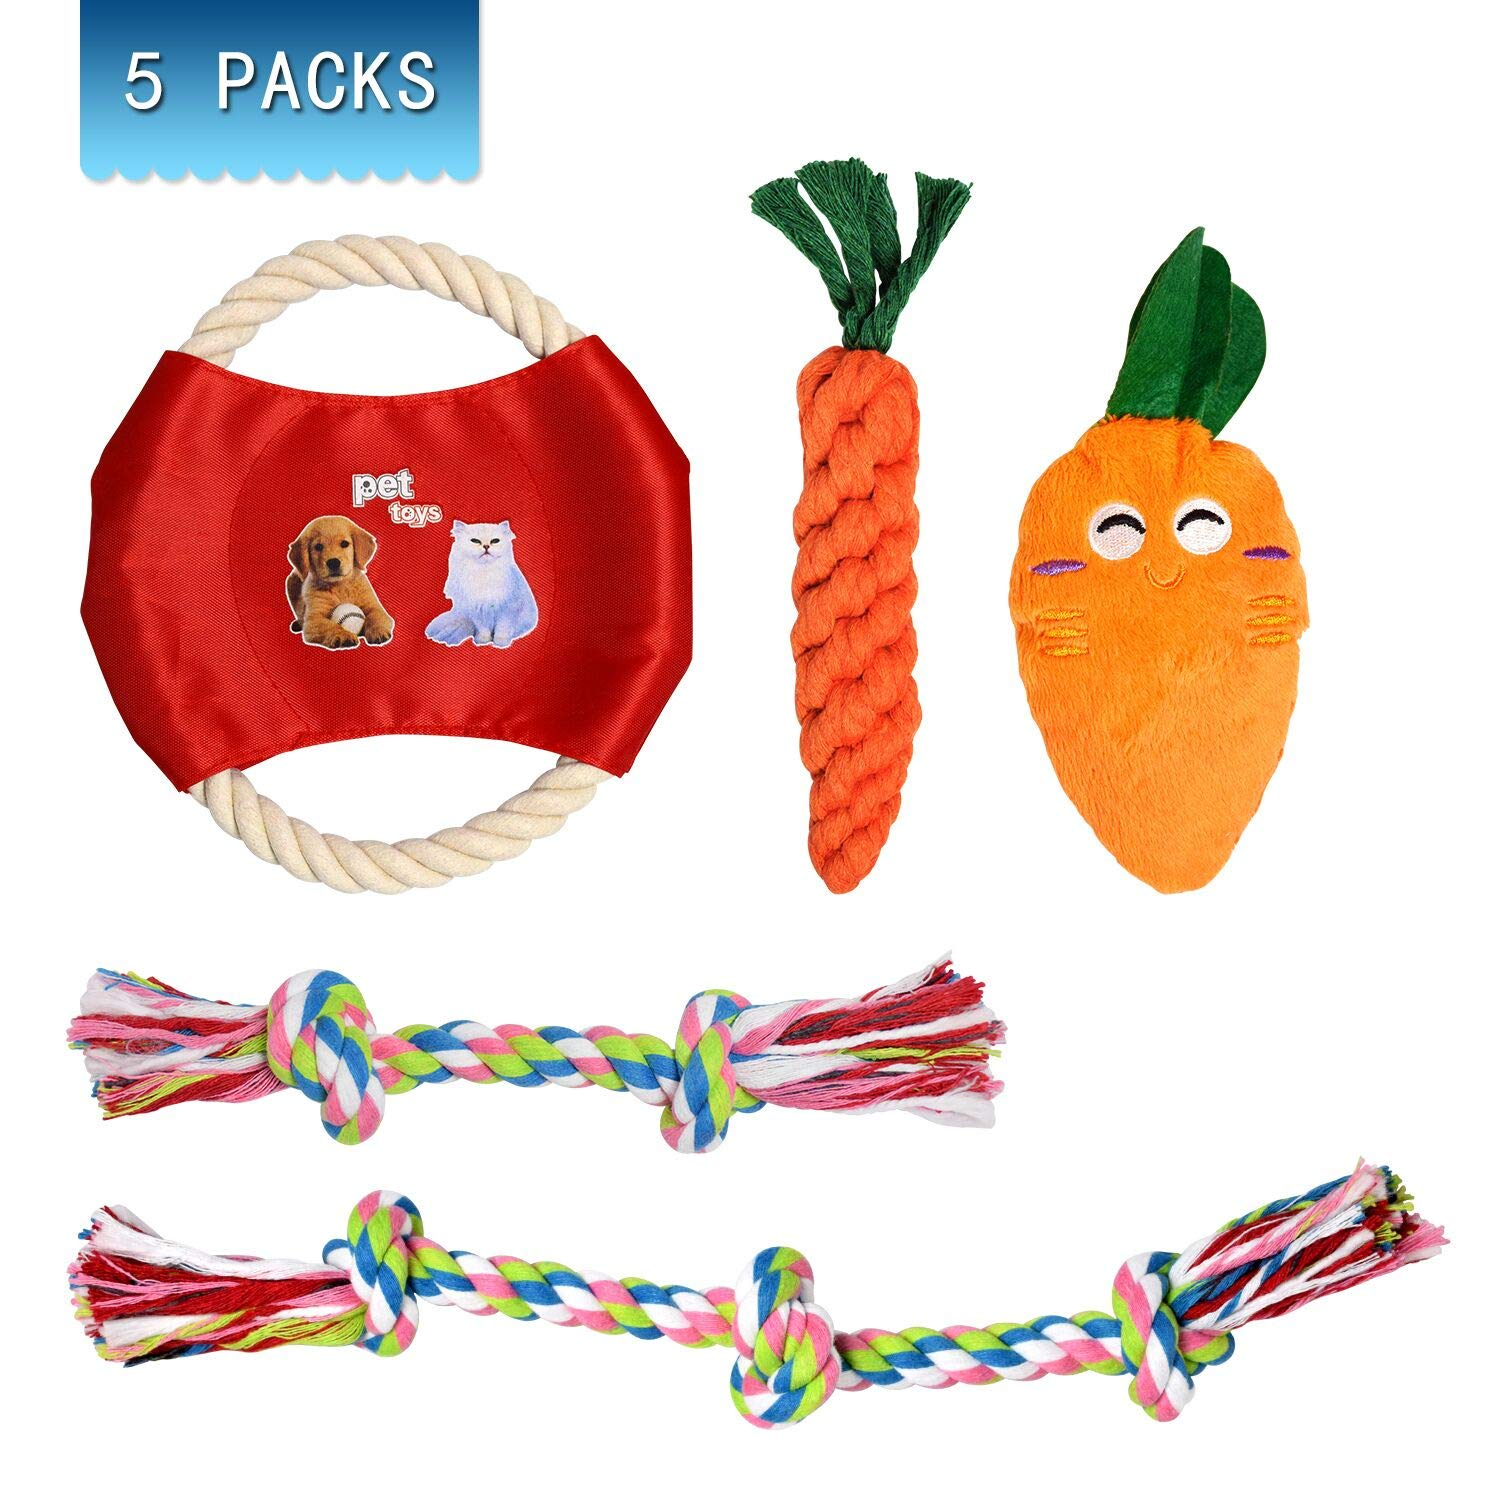 Puppy Chew Toys - Dog Rope Toys Set, Puppy Chew Durable Teething Cotton Toys Teeth Cleaning for Puppy Dogs